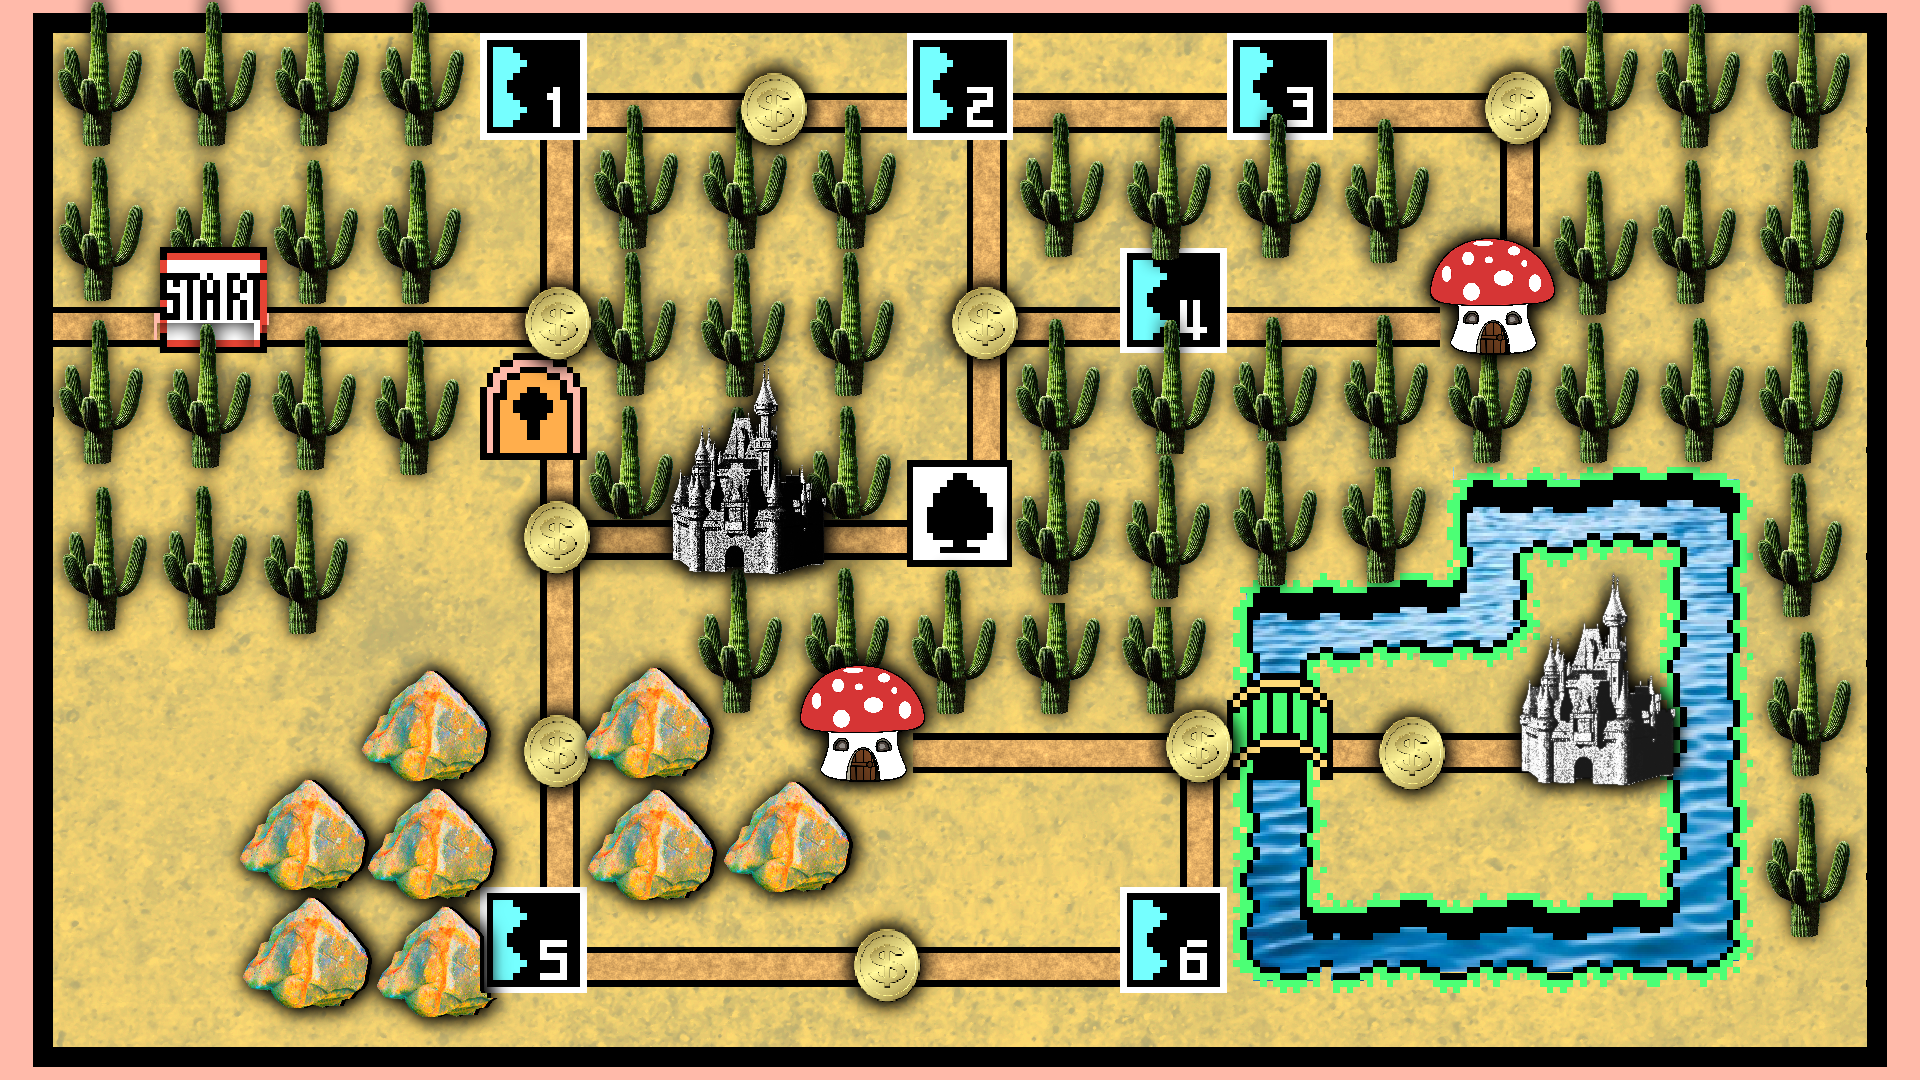 Realistic super mario world 3 map by jollypotato on deviantart super mario world 3 map by jollypotato gumiabroncs Choice Image